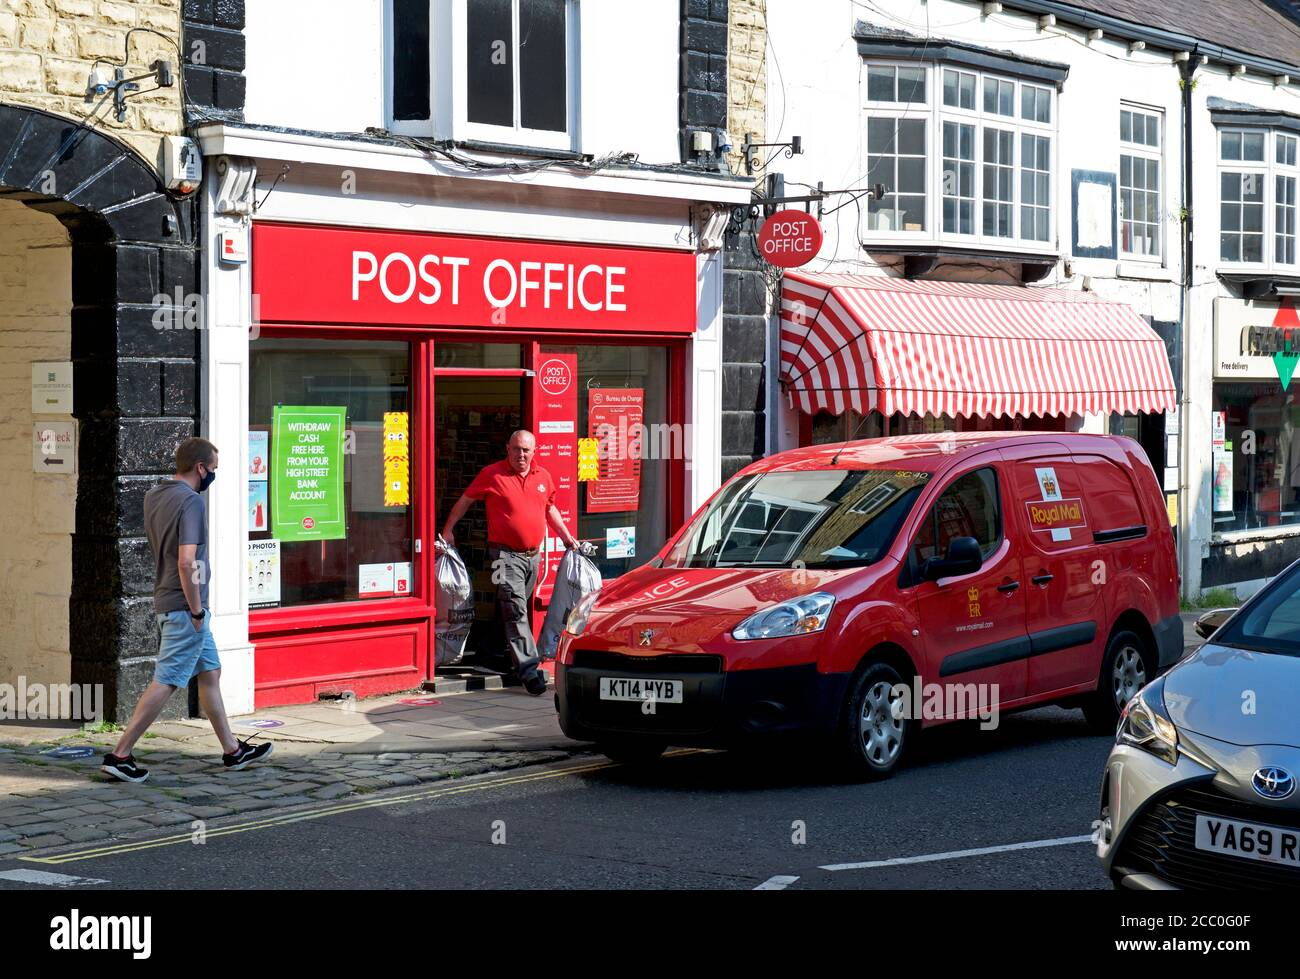 the-post-office-on-high-street-wetherby-west-yorkshire-england-uk-2CC0G0F.jpg